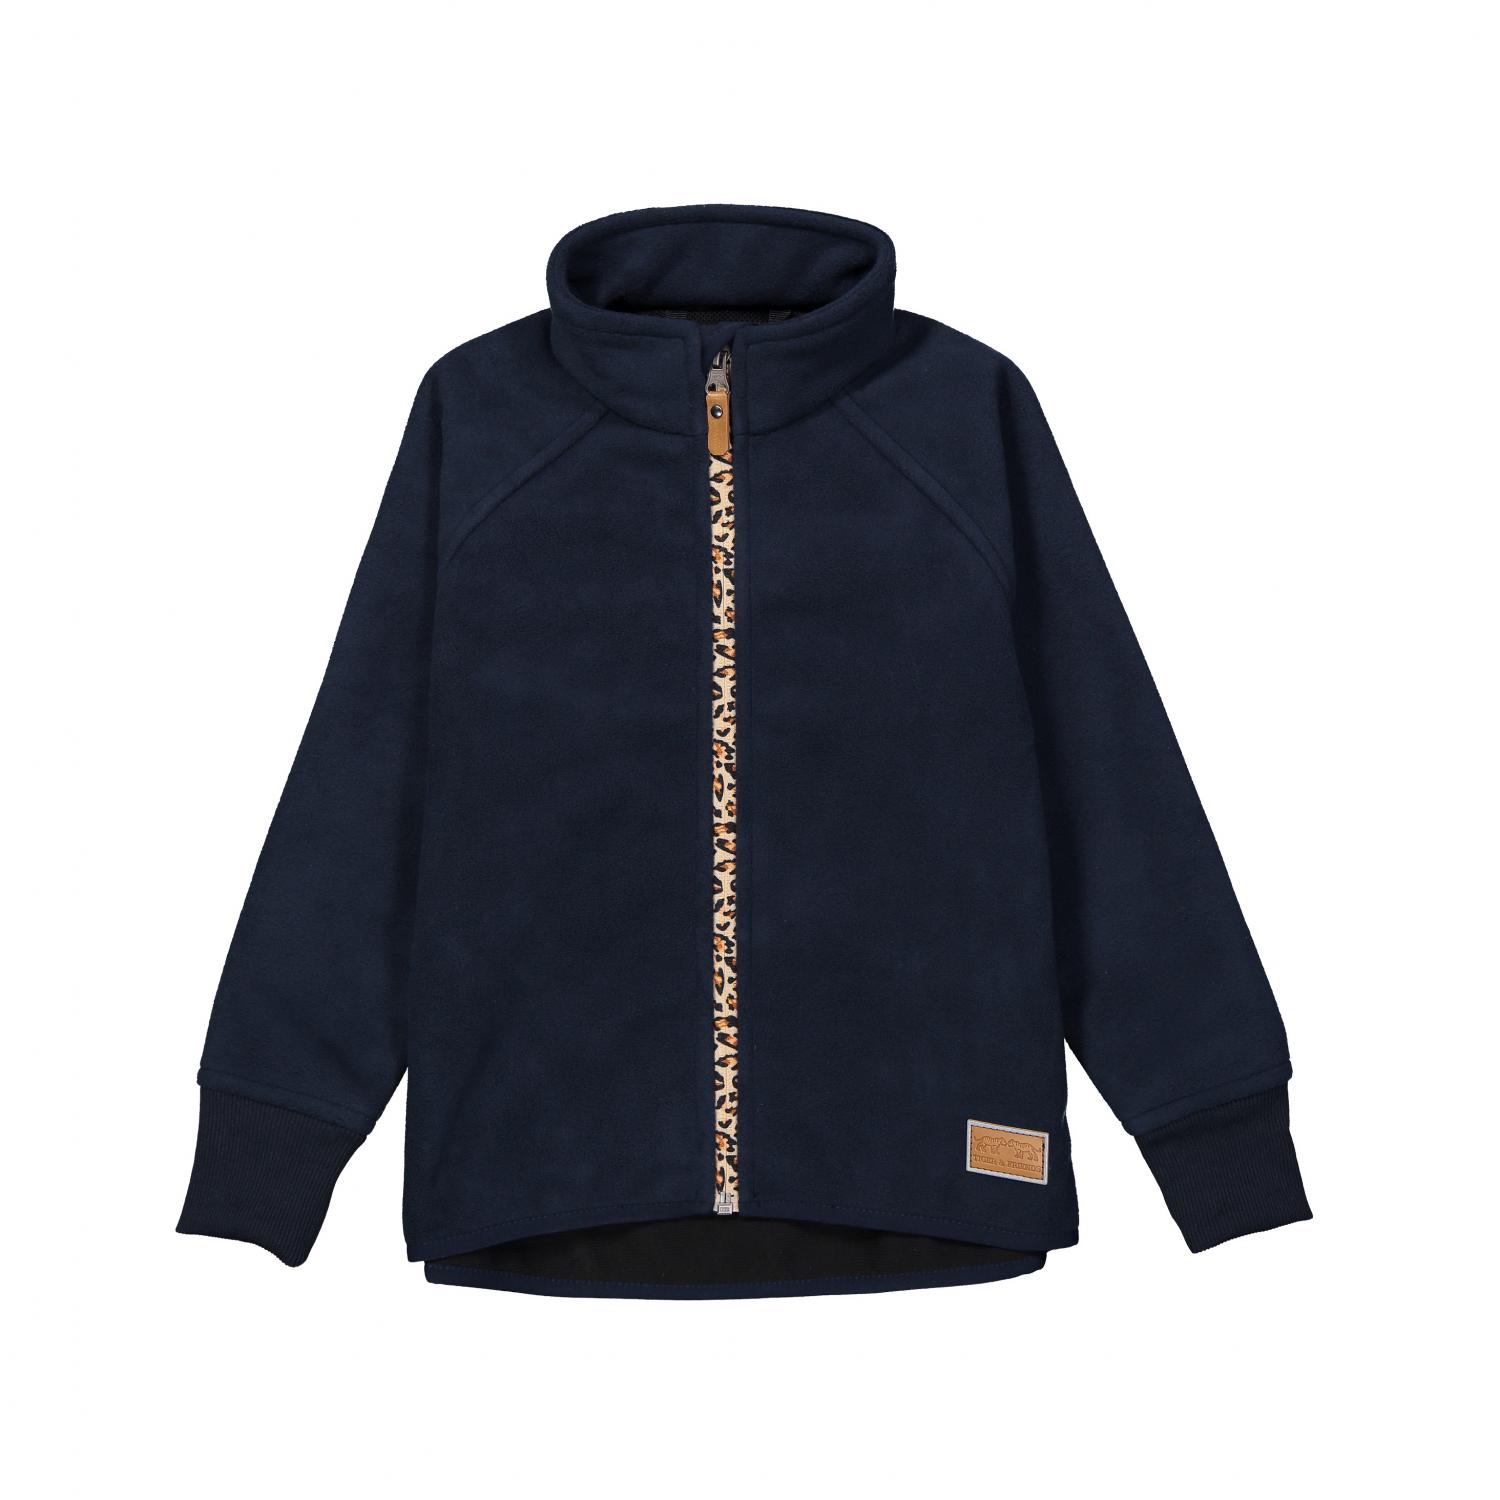 Nilo windfleece jacket